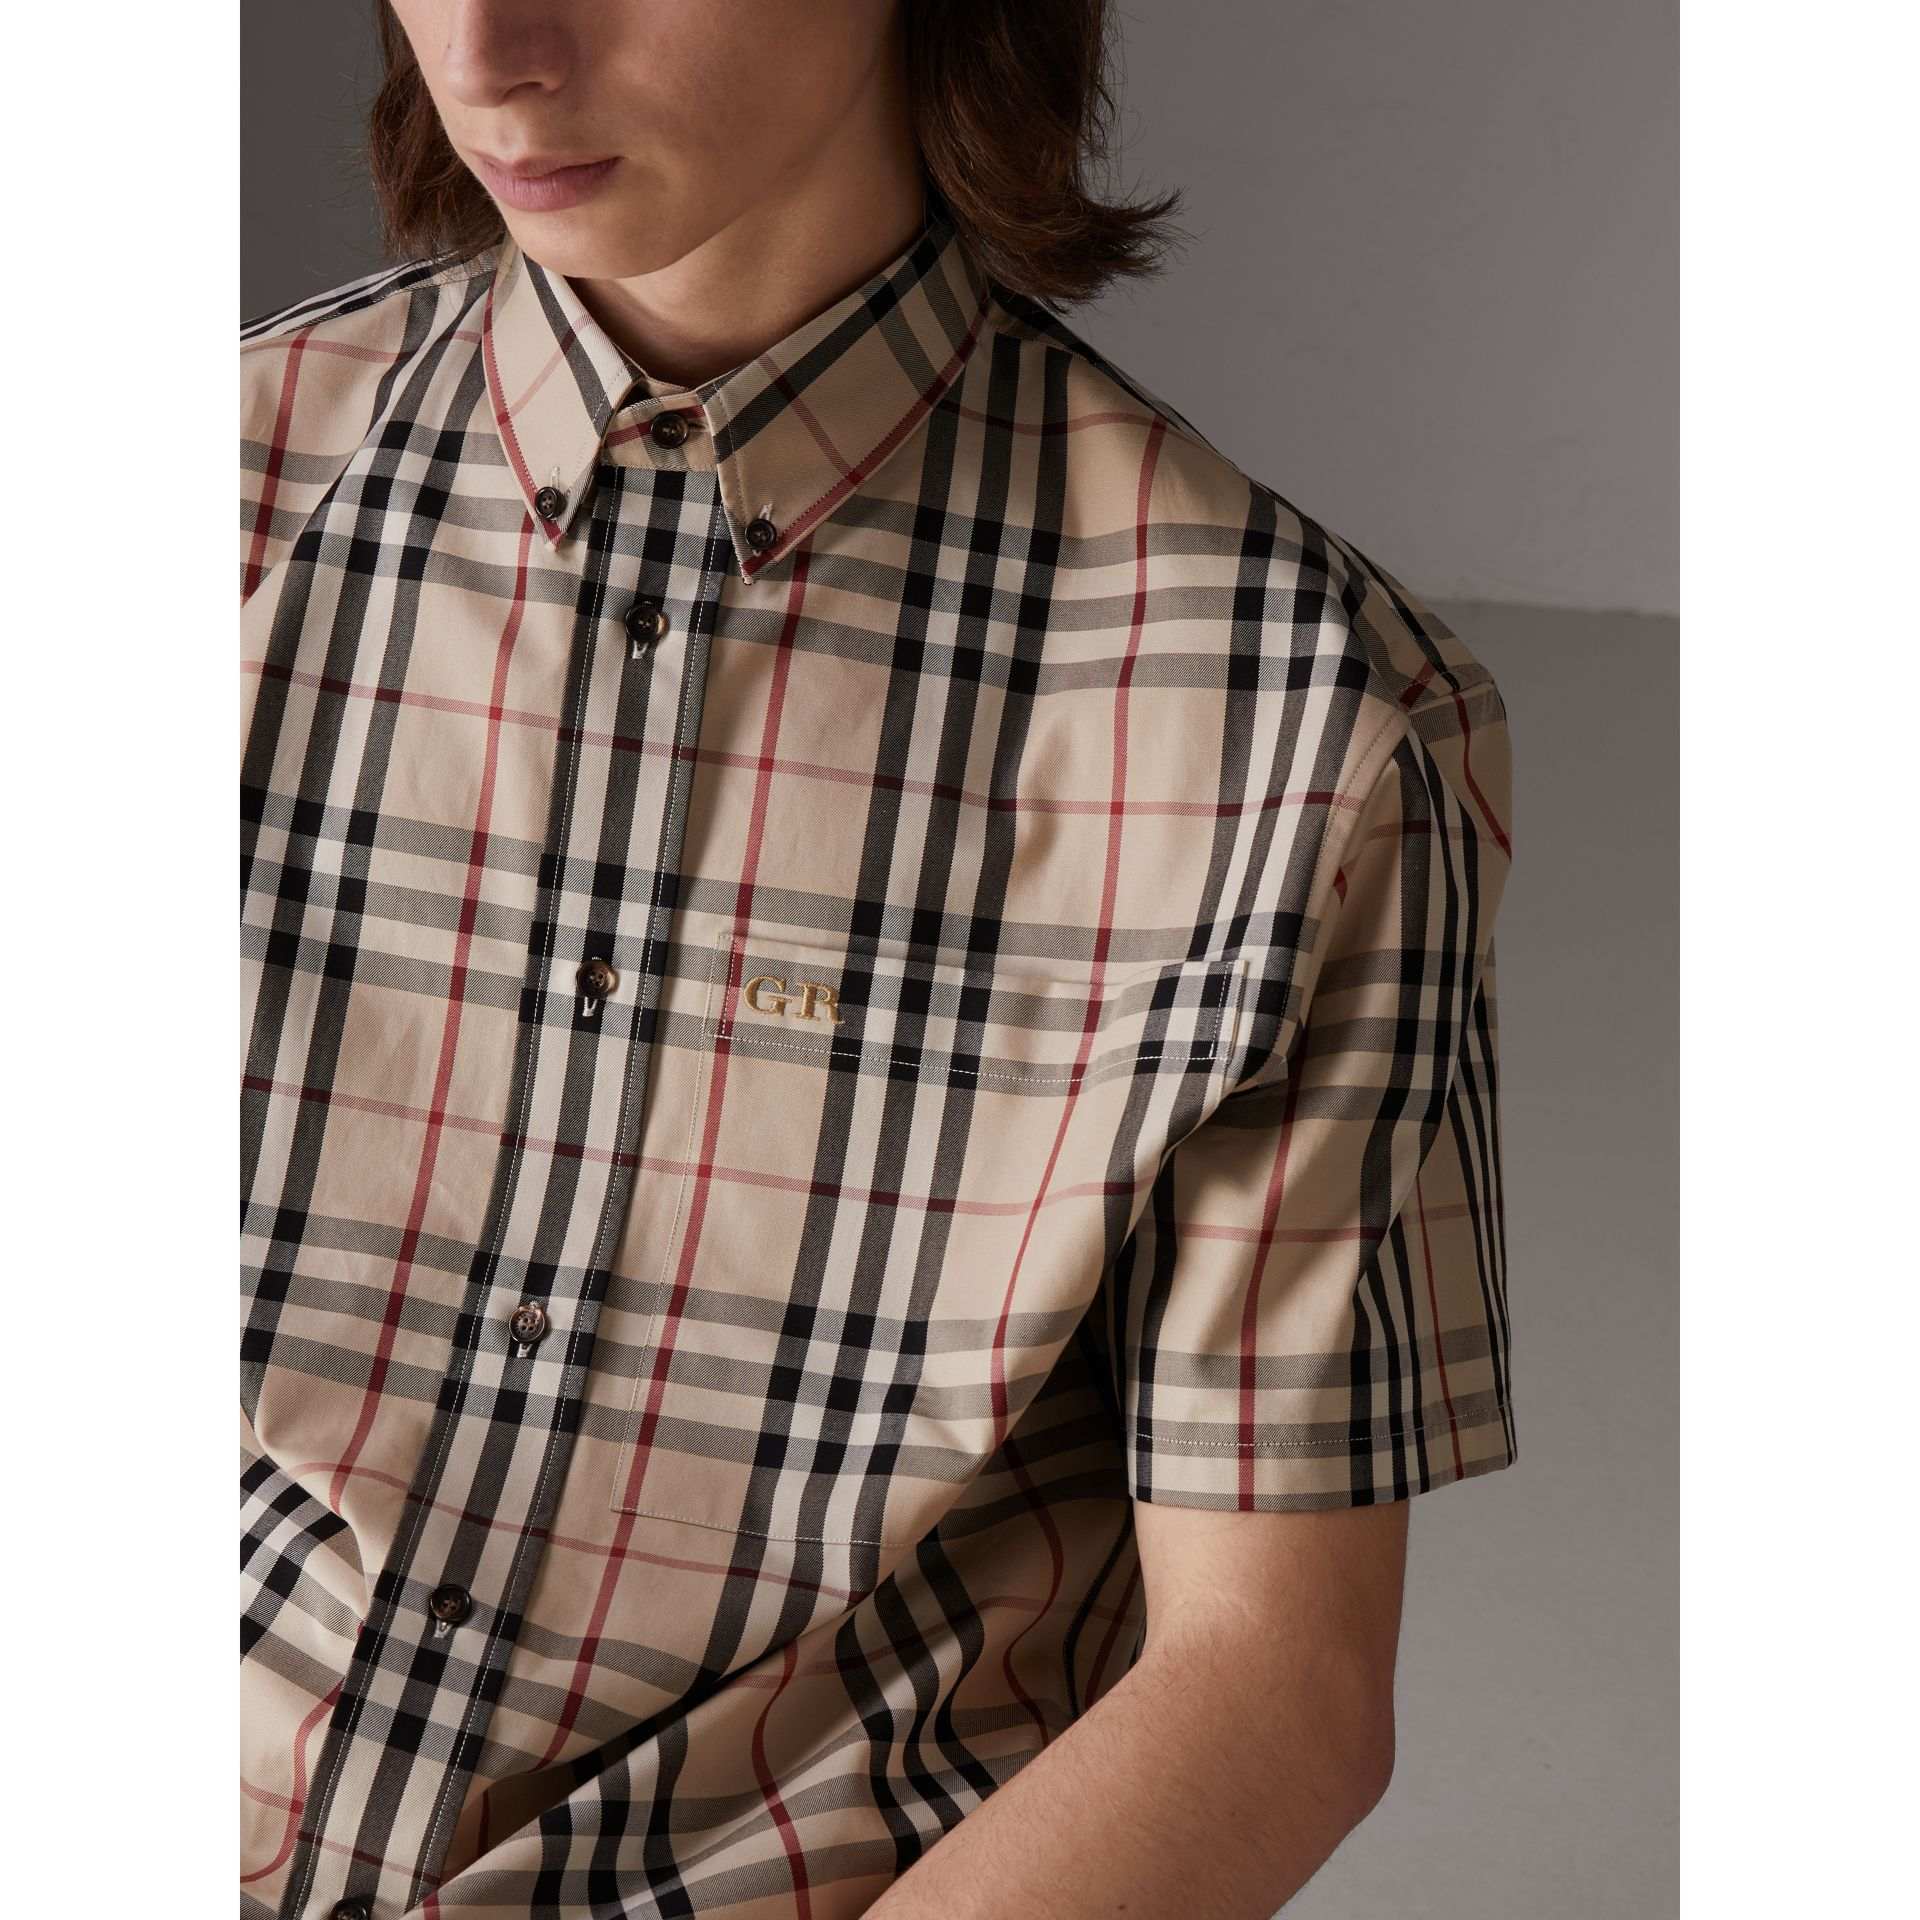 Gosha x Burberry Short-sleeve Check Shirt in Honey | Burberry - gallery image 1